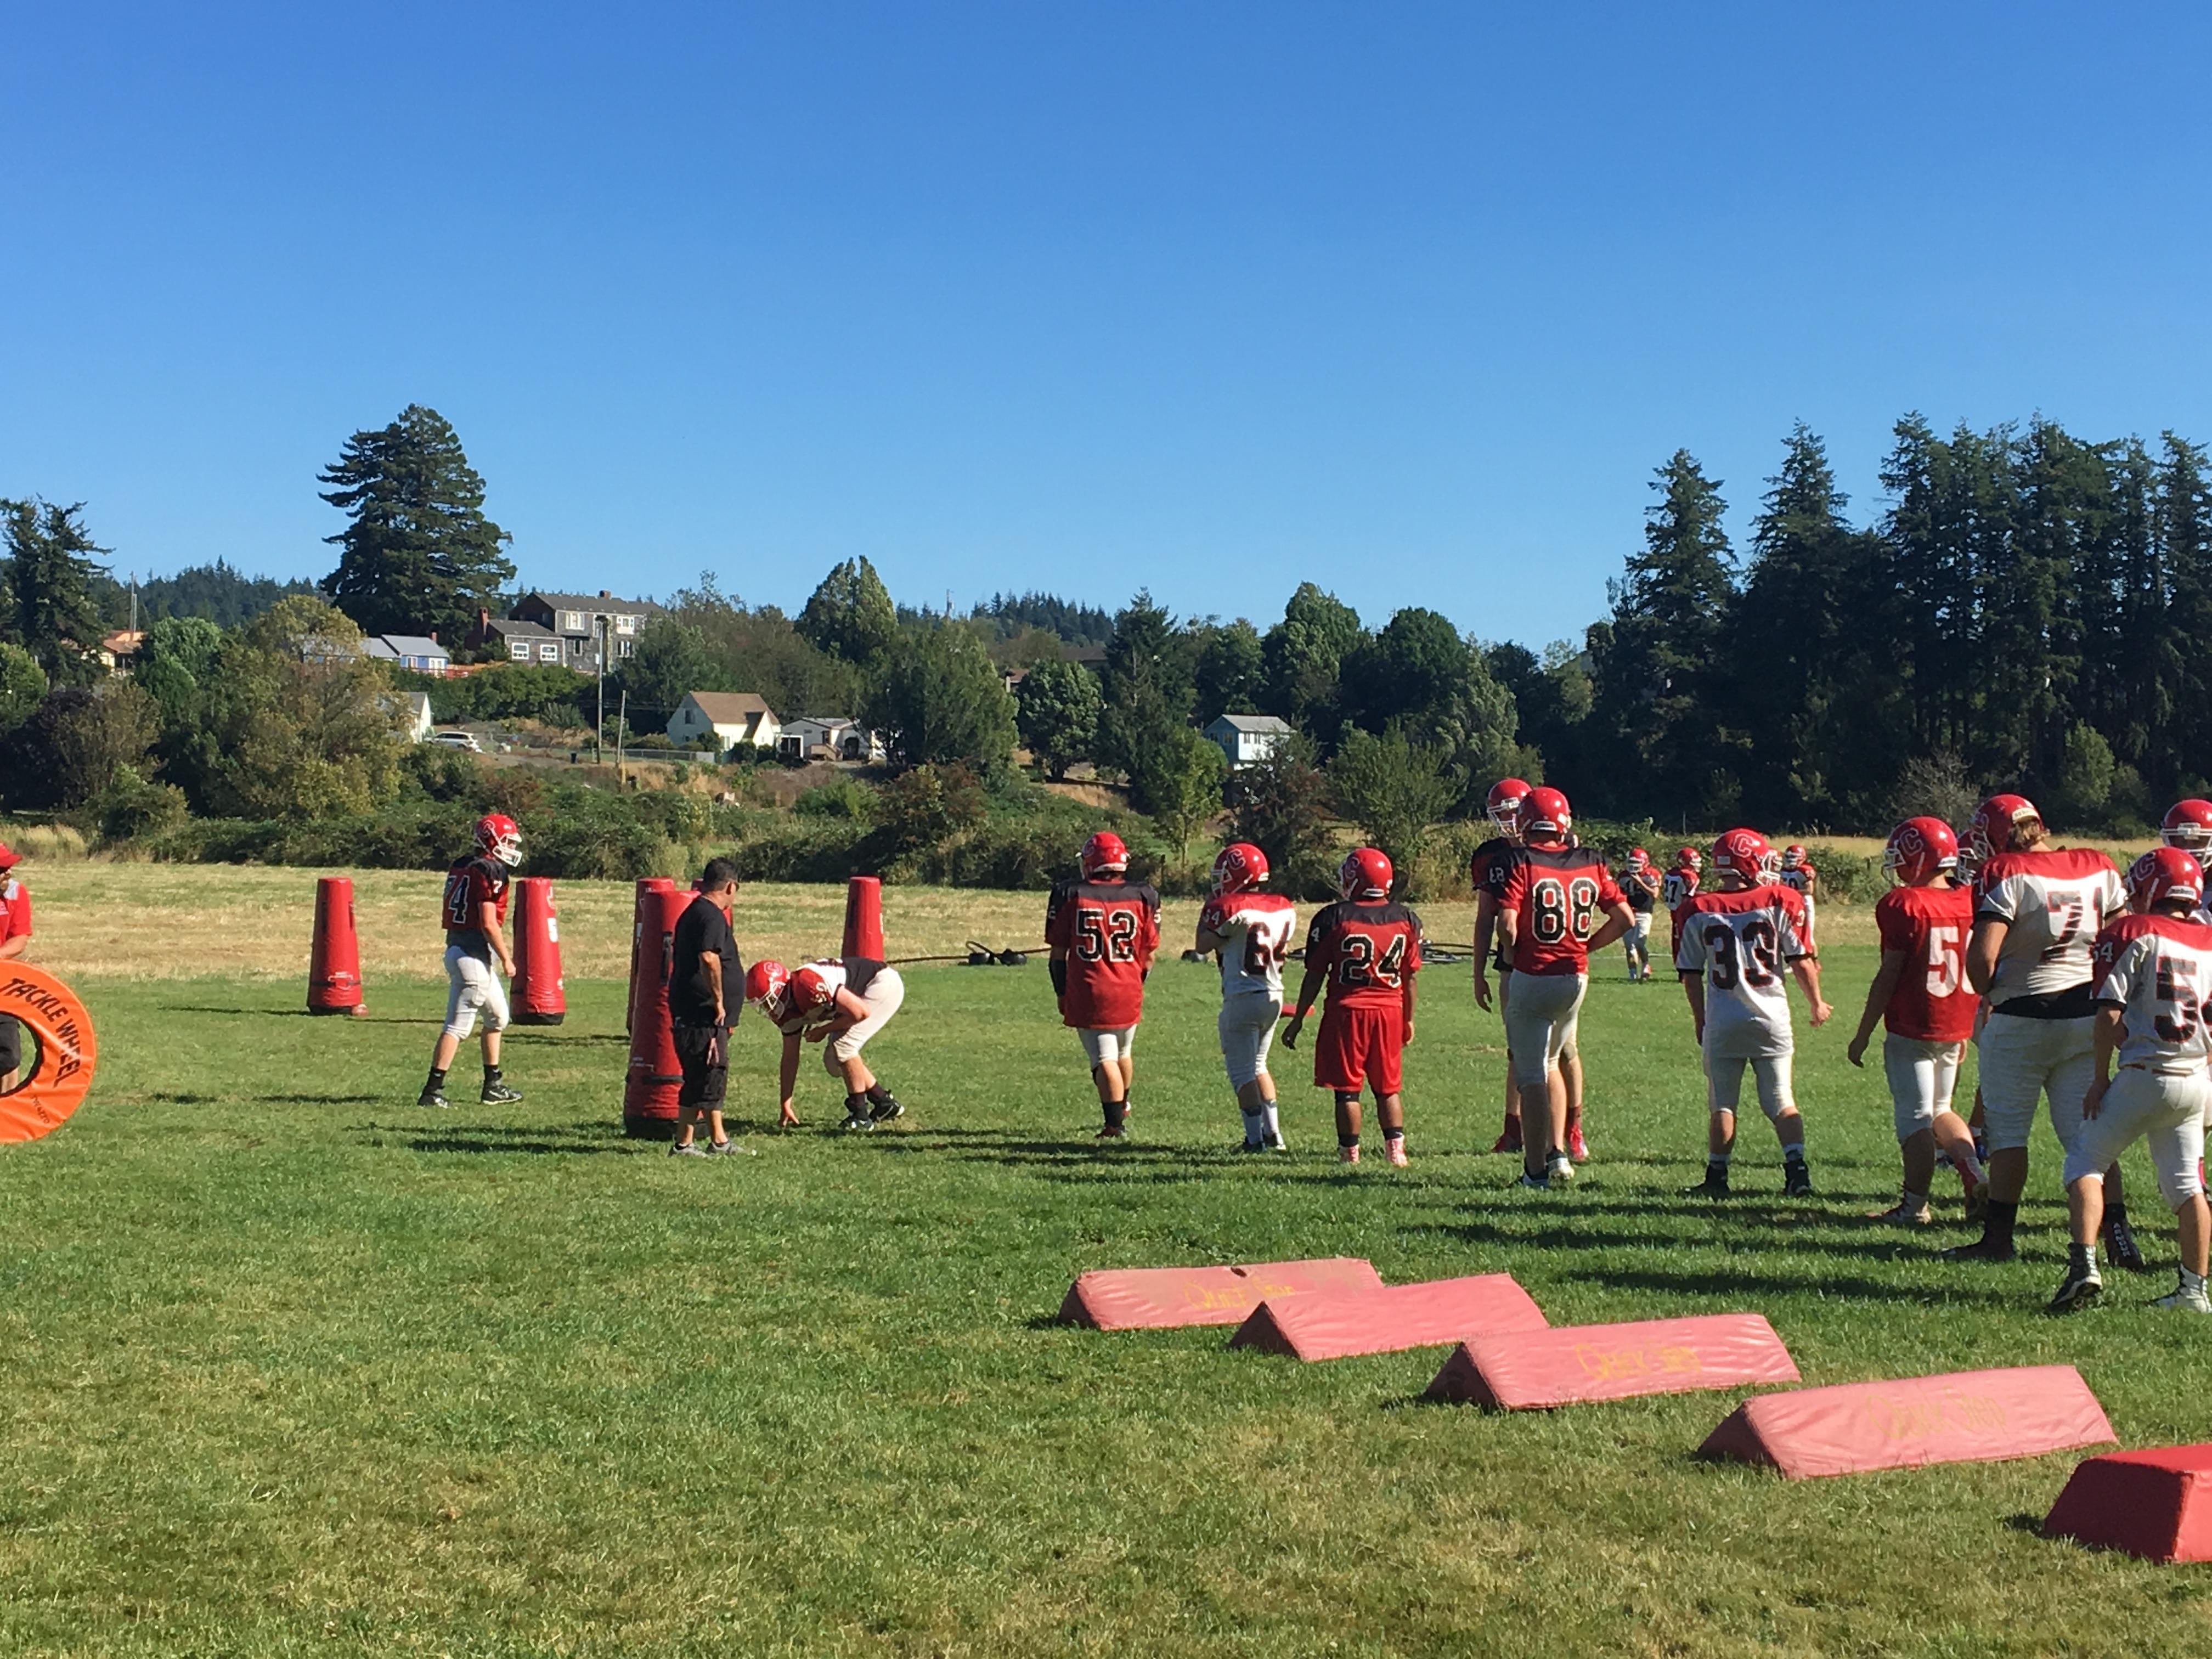 The Coquille football team practices before their season-opening game, August 30, 2017. (SBG)